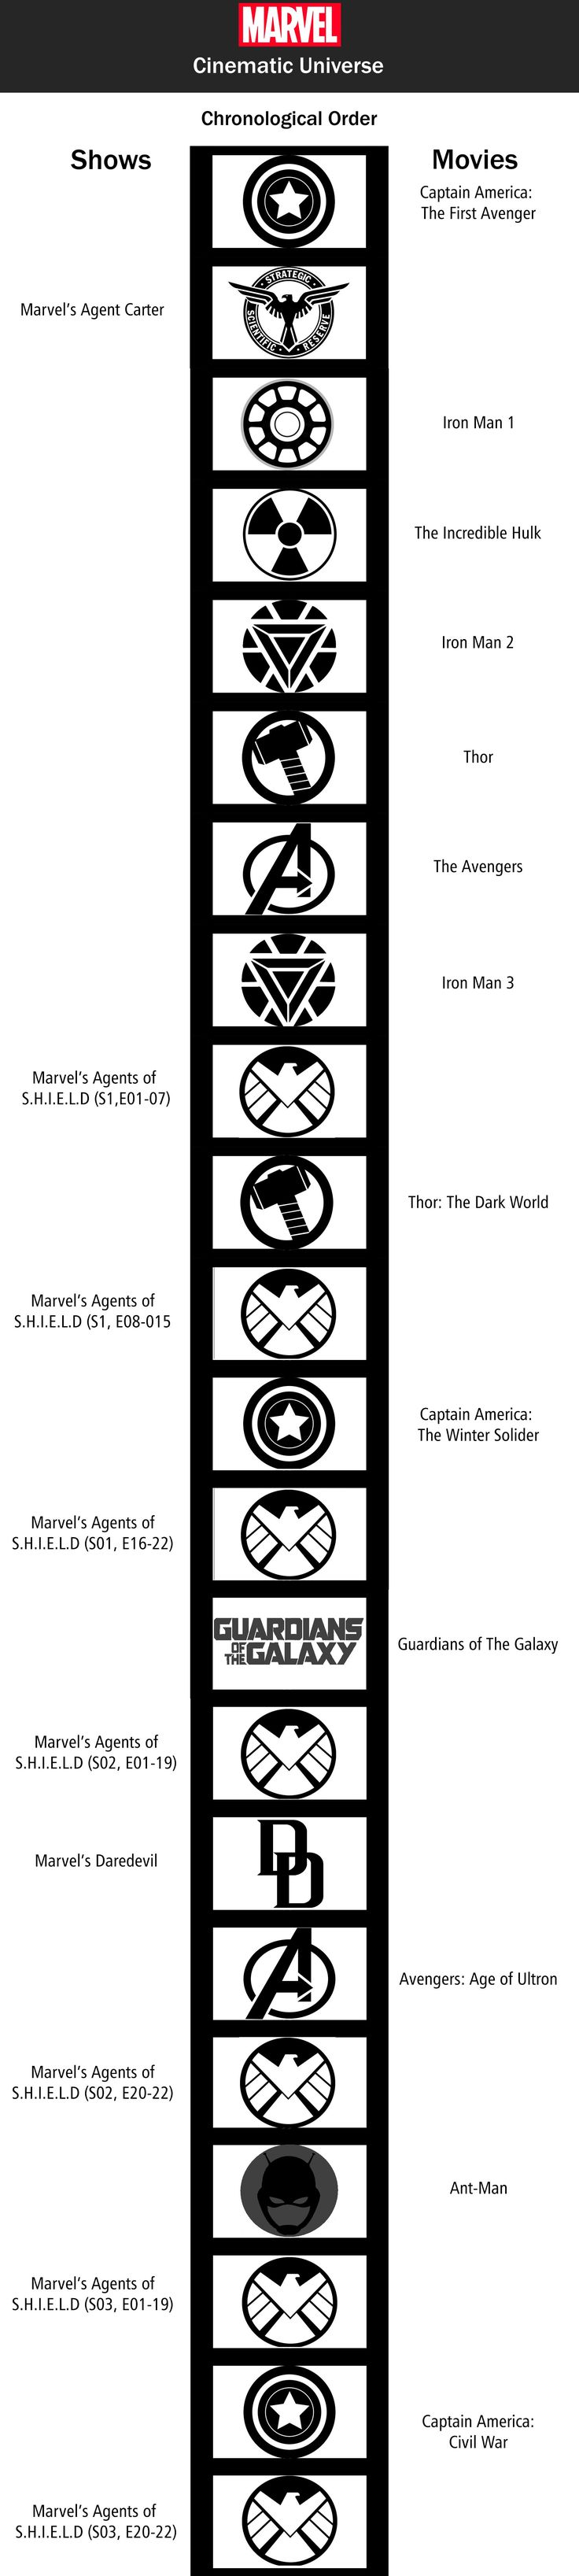 Marvel Movies and Shows in Chronological order. Need to watch all these sometime.